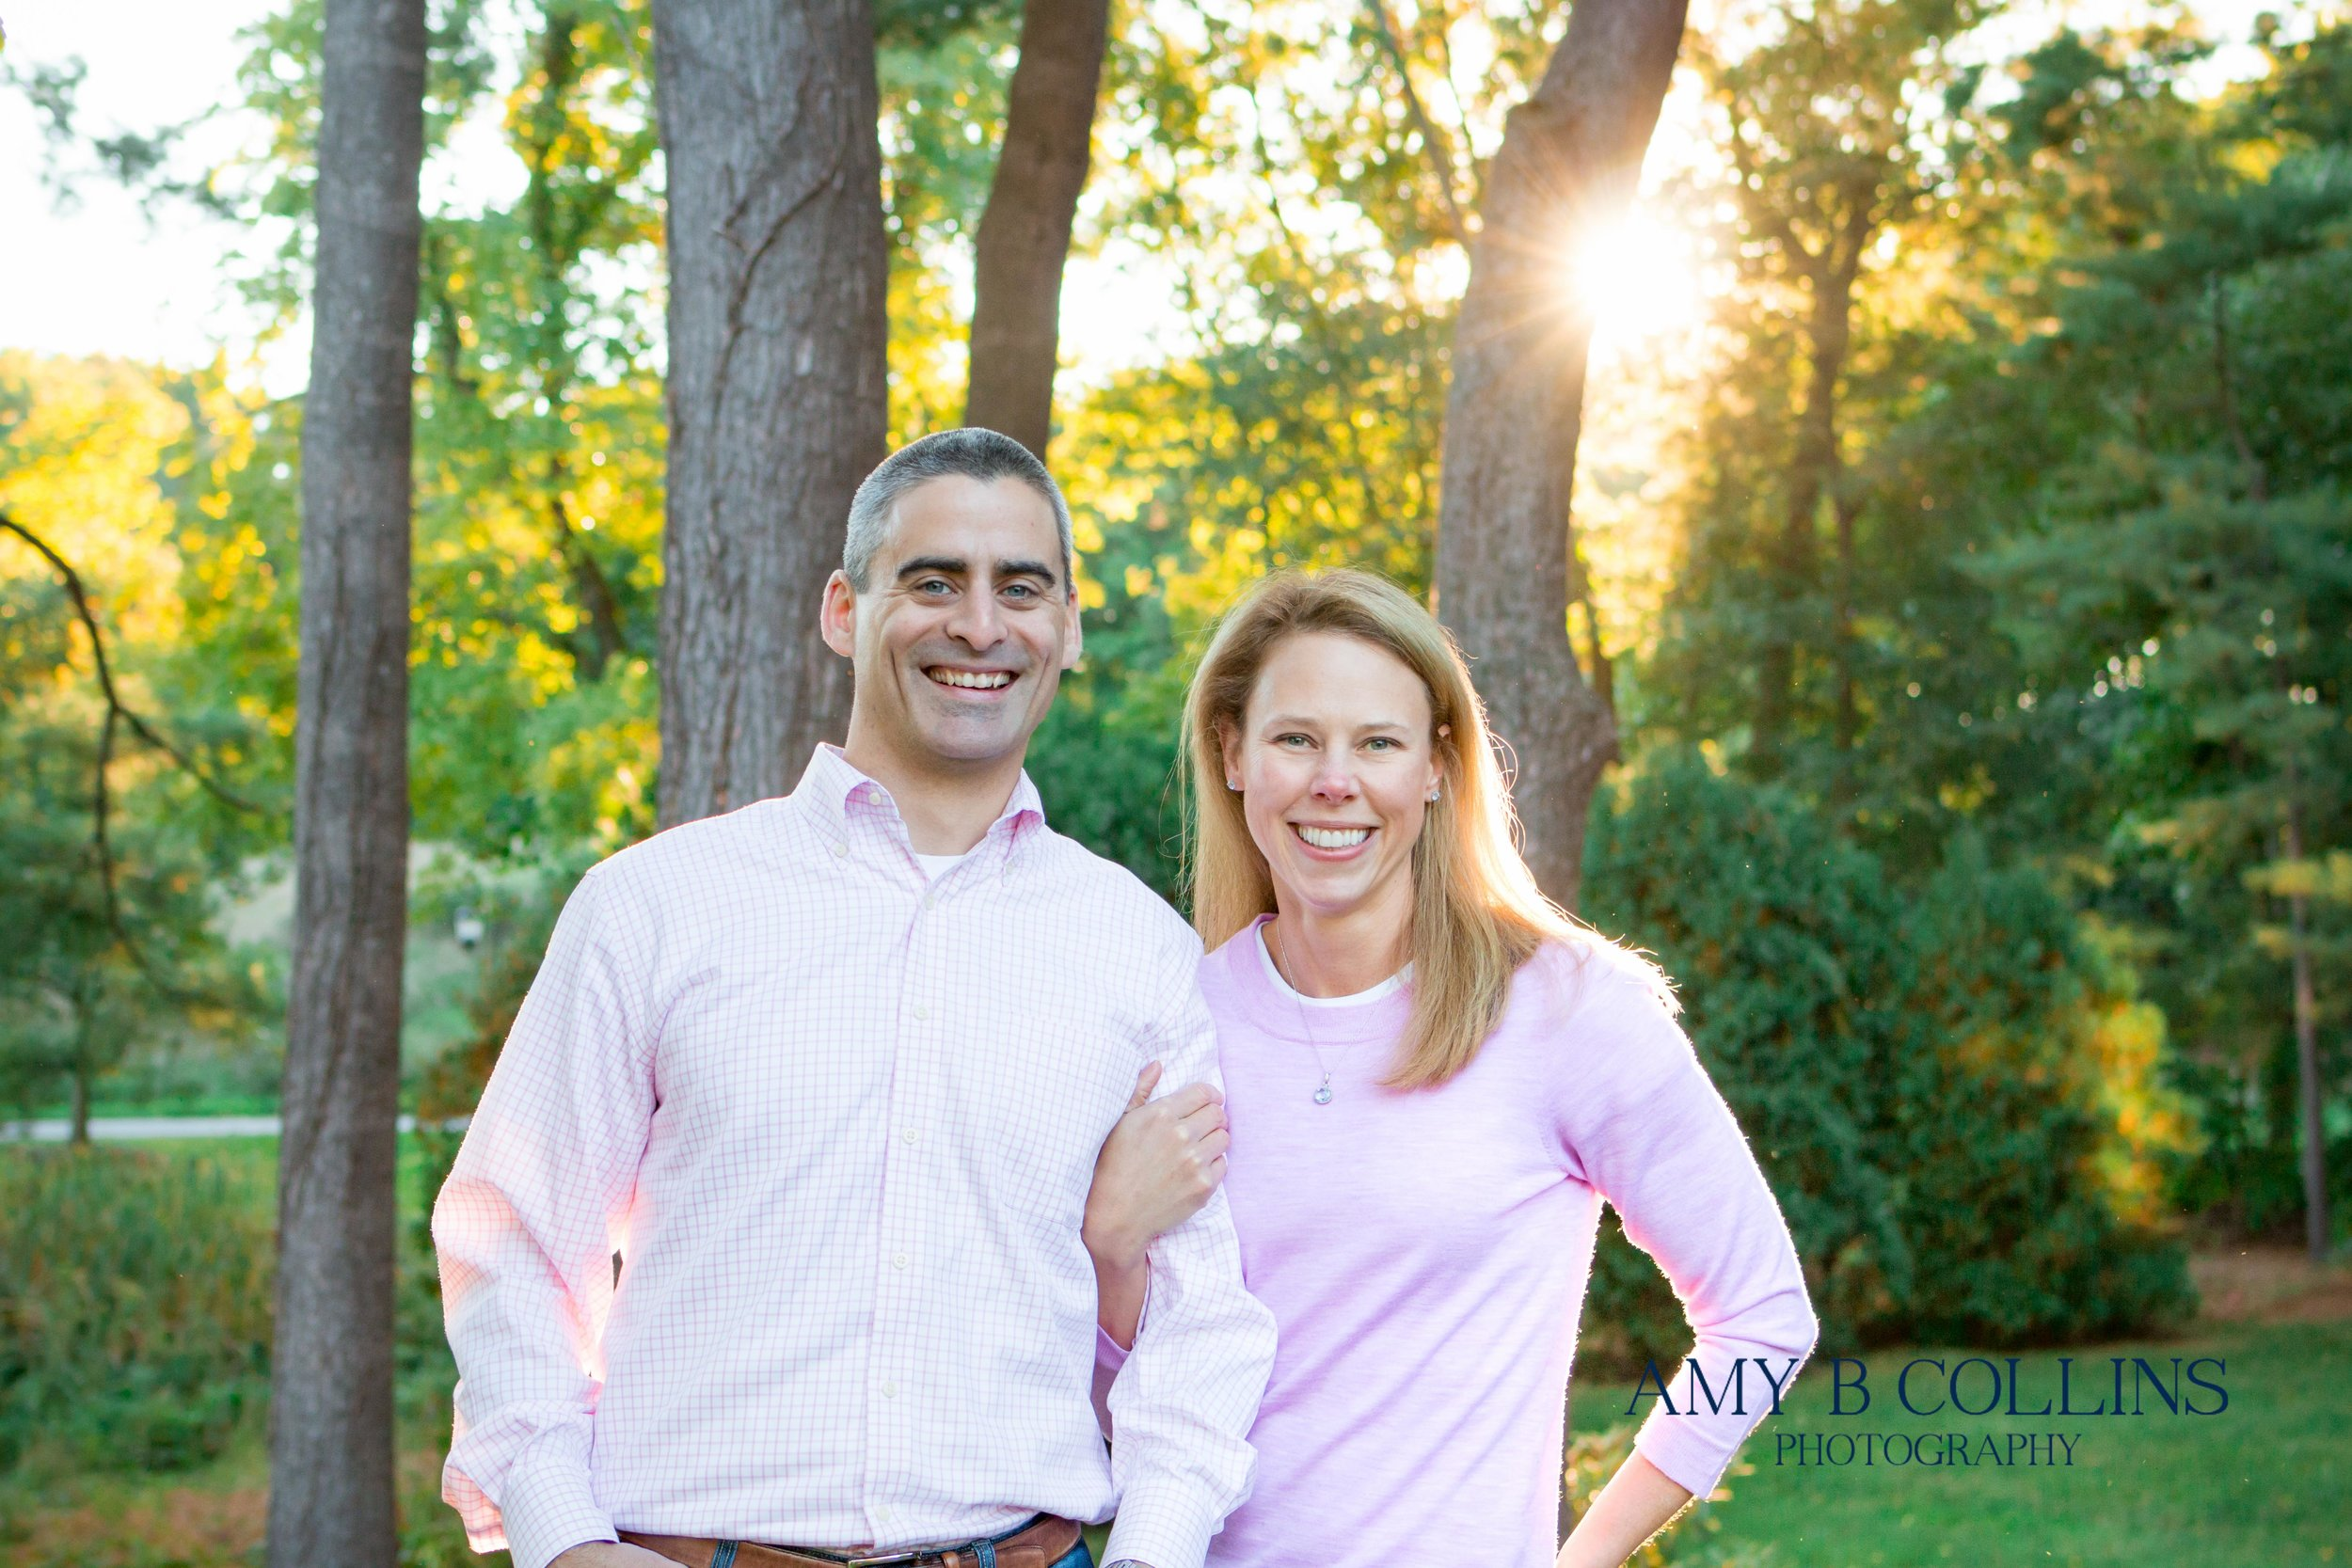 AmyBCollinsPhotography_FamilySession_H-5.jpg